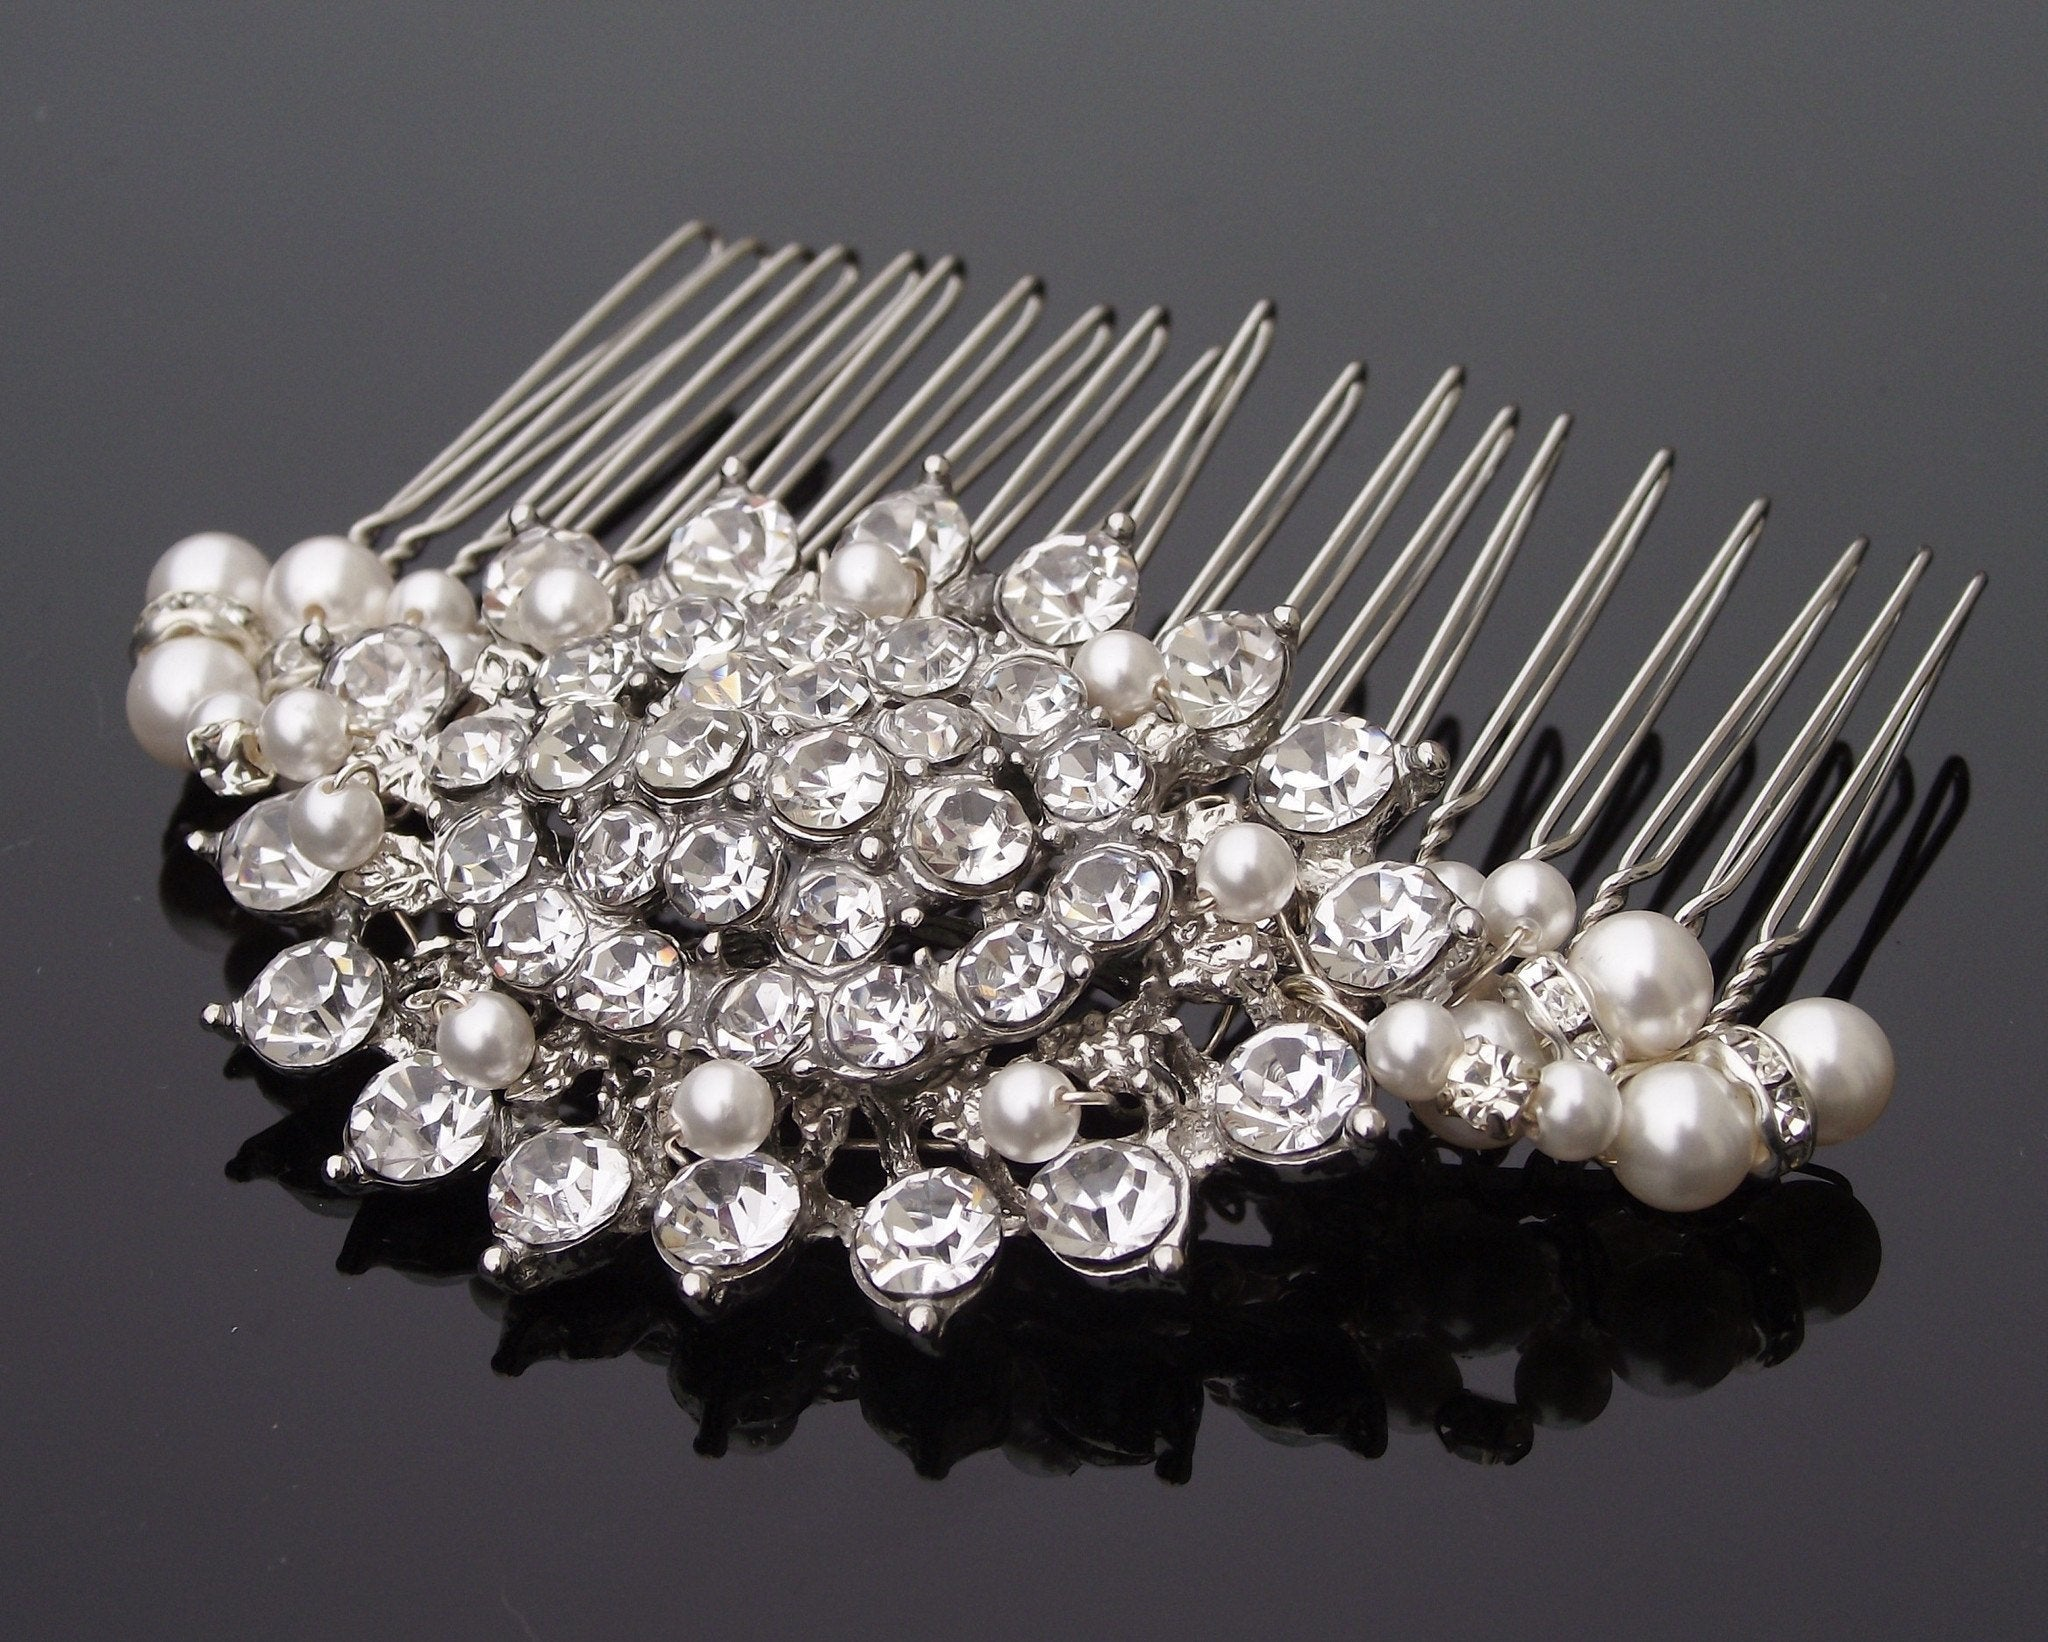 Wedding Hair Combs - Rhinestone And Pearl Oval Style Hair Comb, Sally